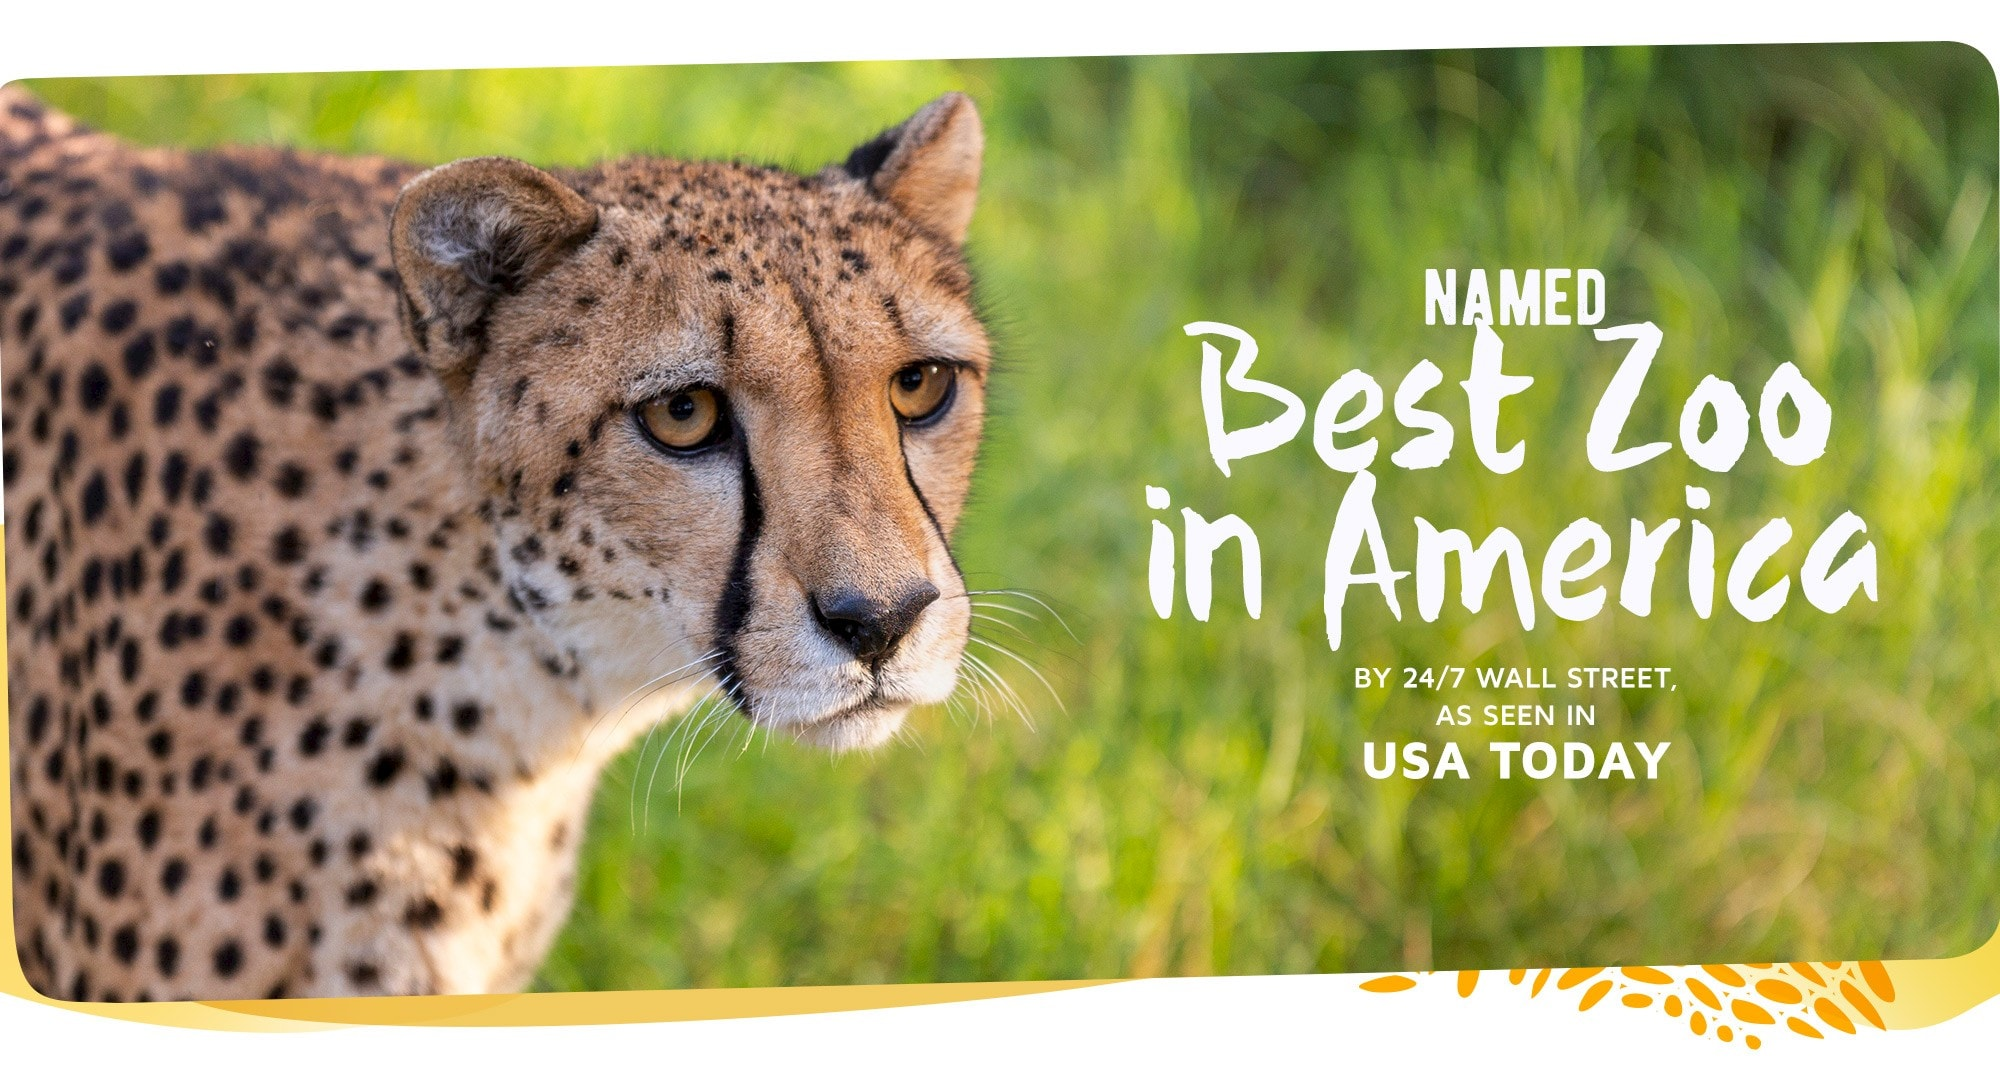 Named Best Zoo in America. Click for more information.